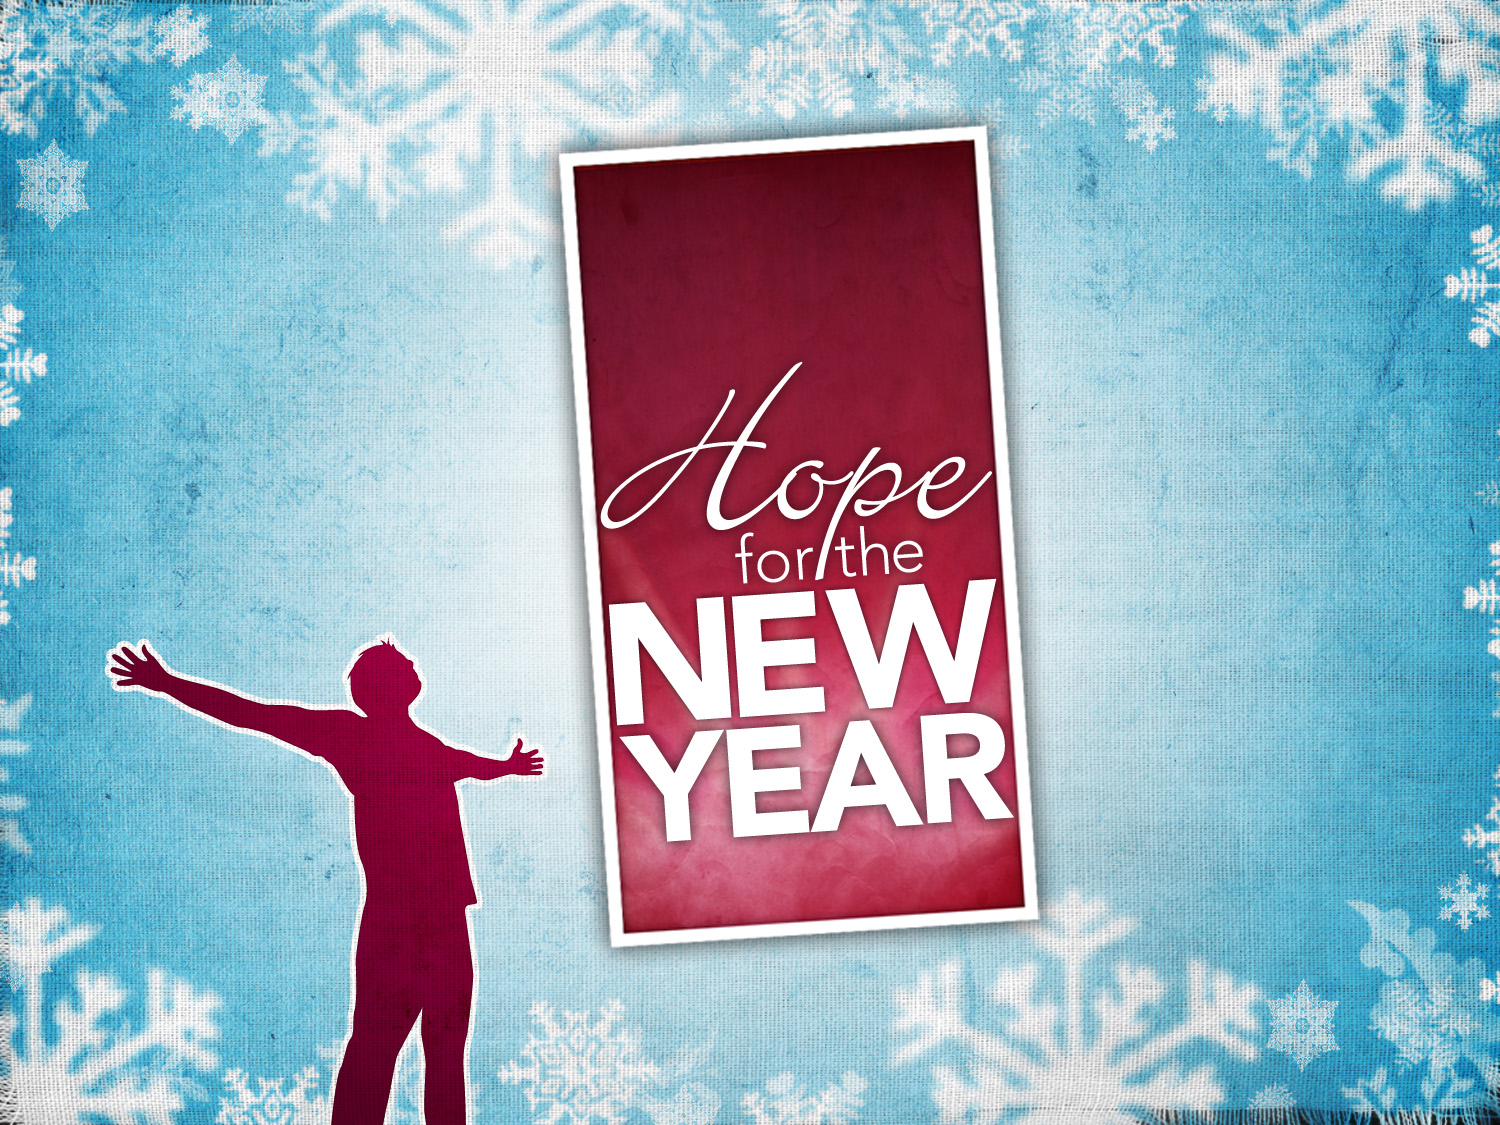 Hope and New Year hope for the new year t